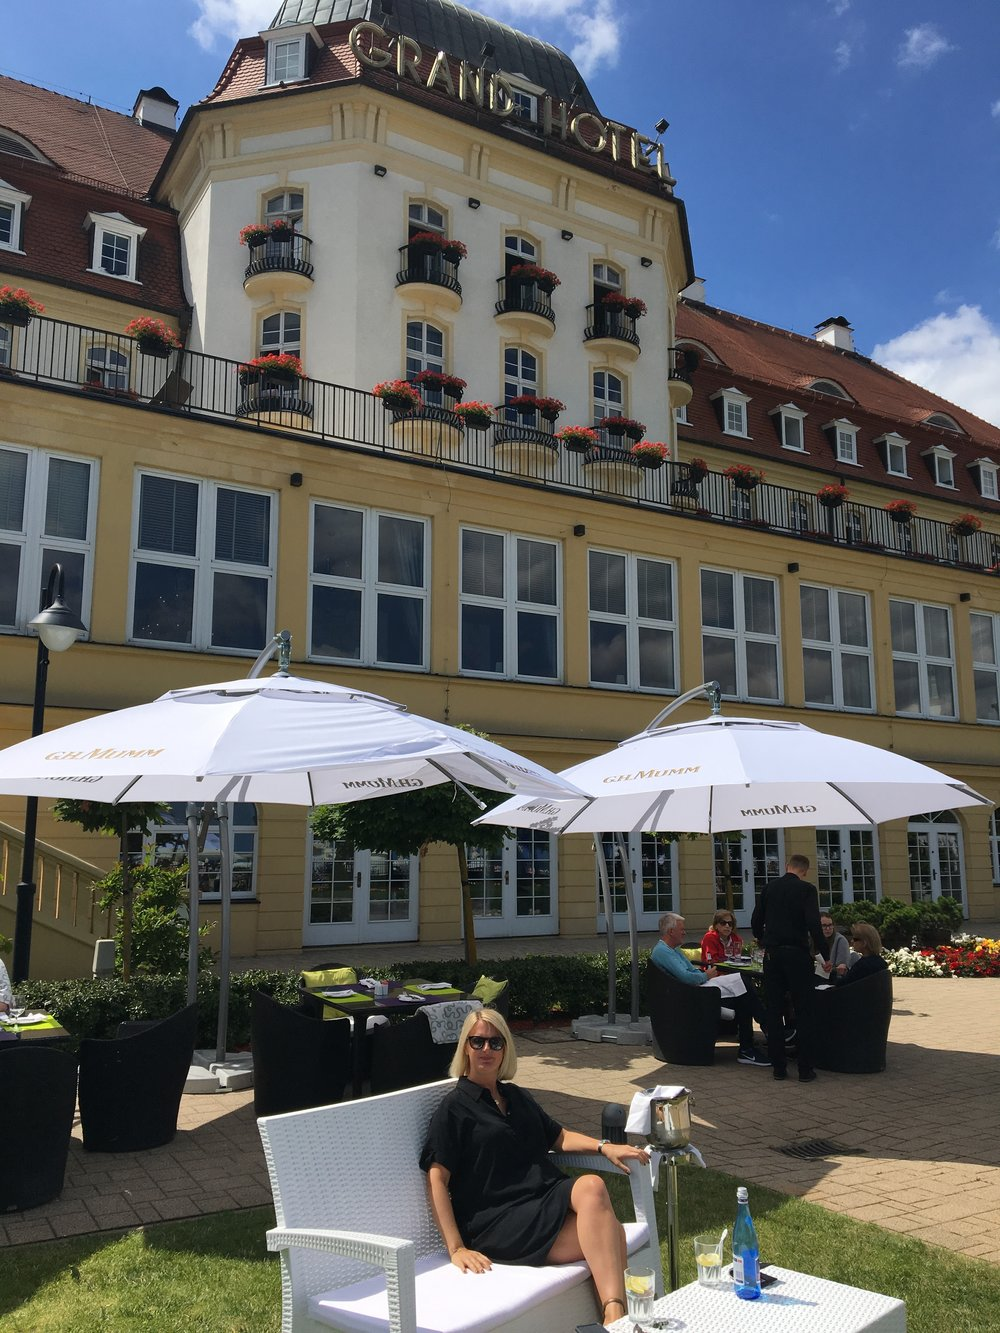 The Grand Hotel in Sopot is the perfect spot for relaxing and people watching.